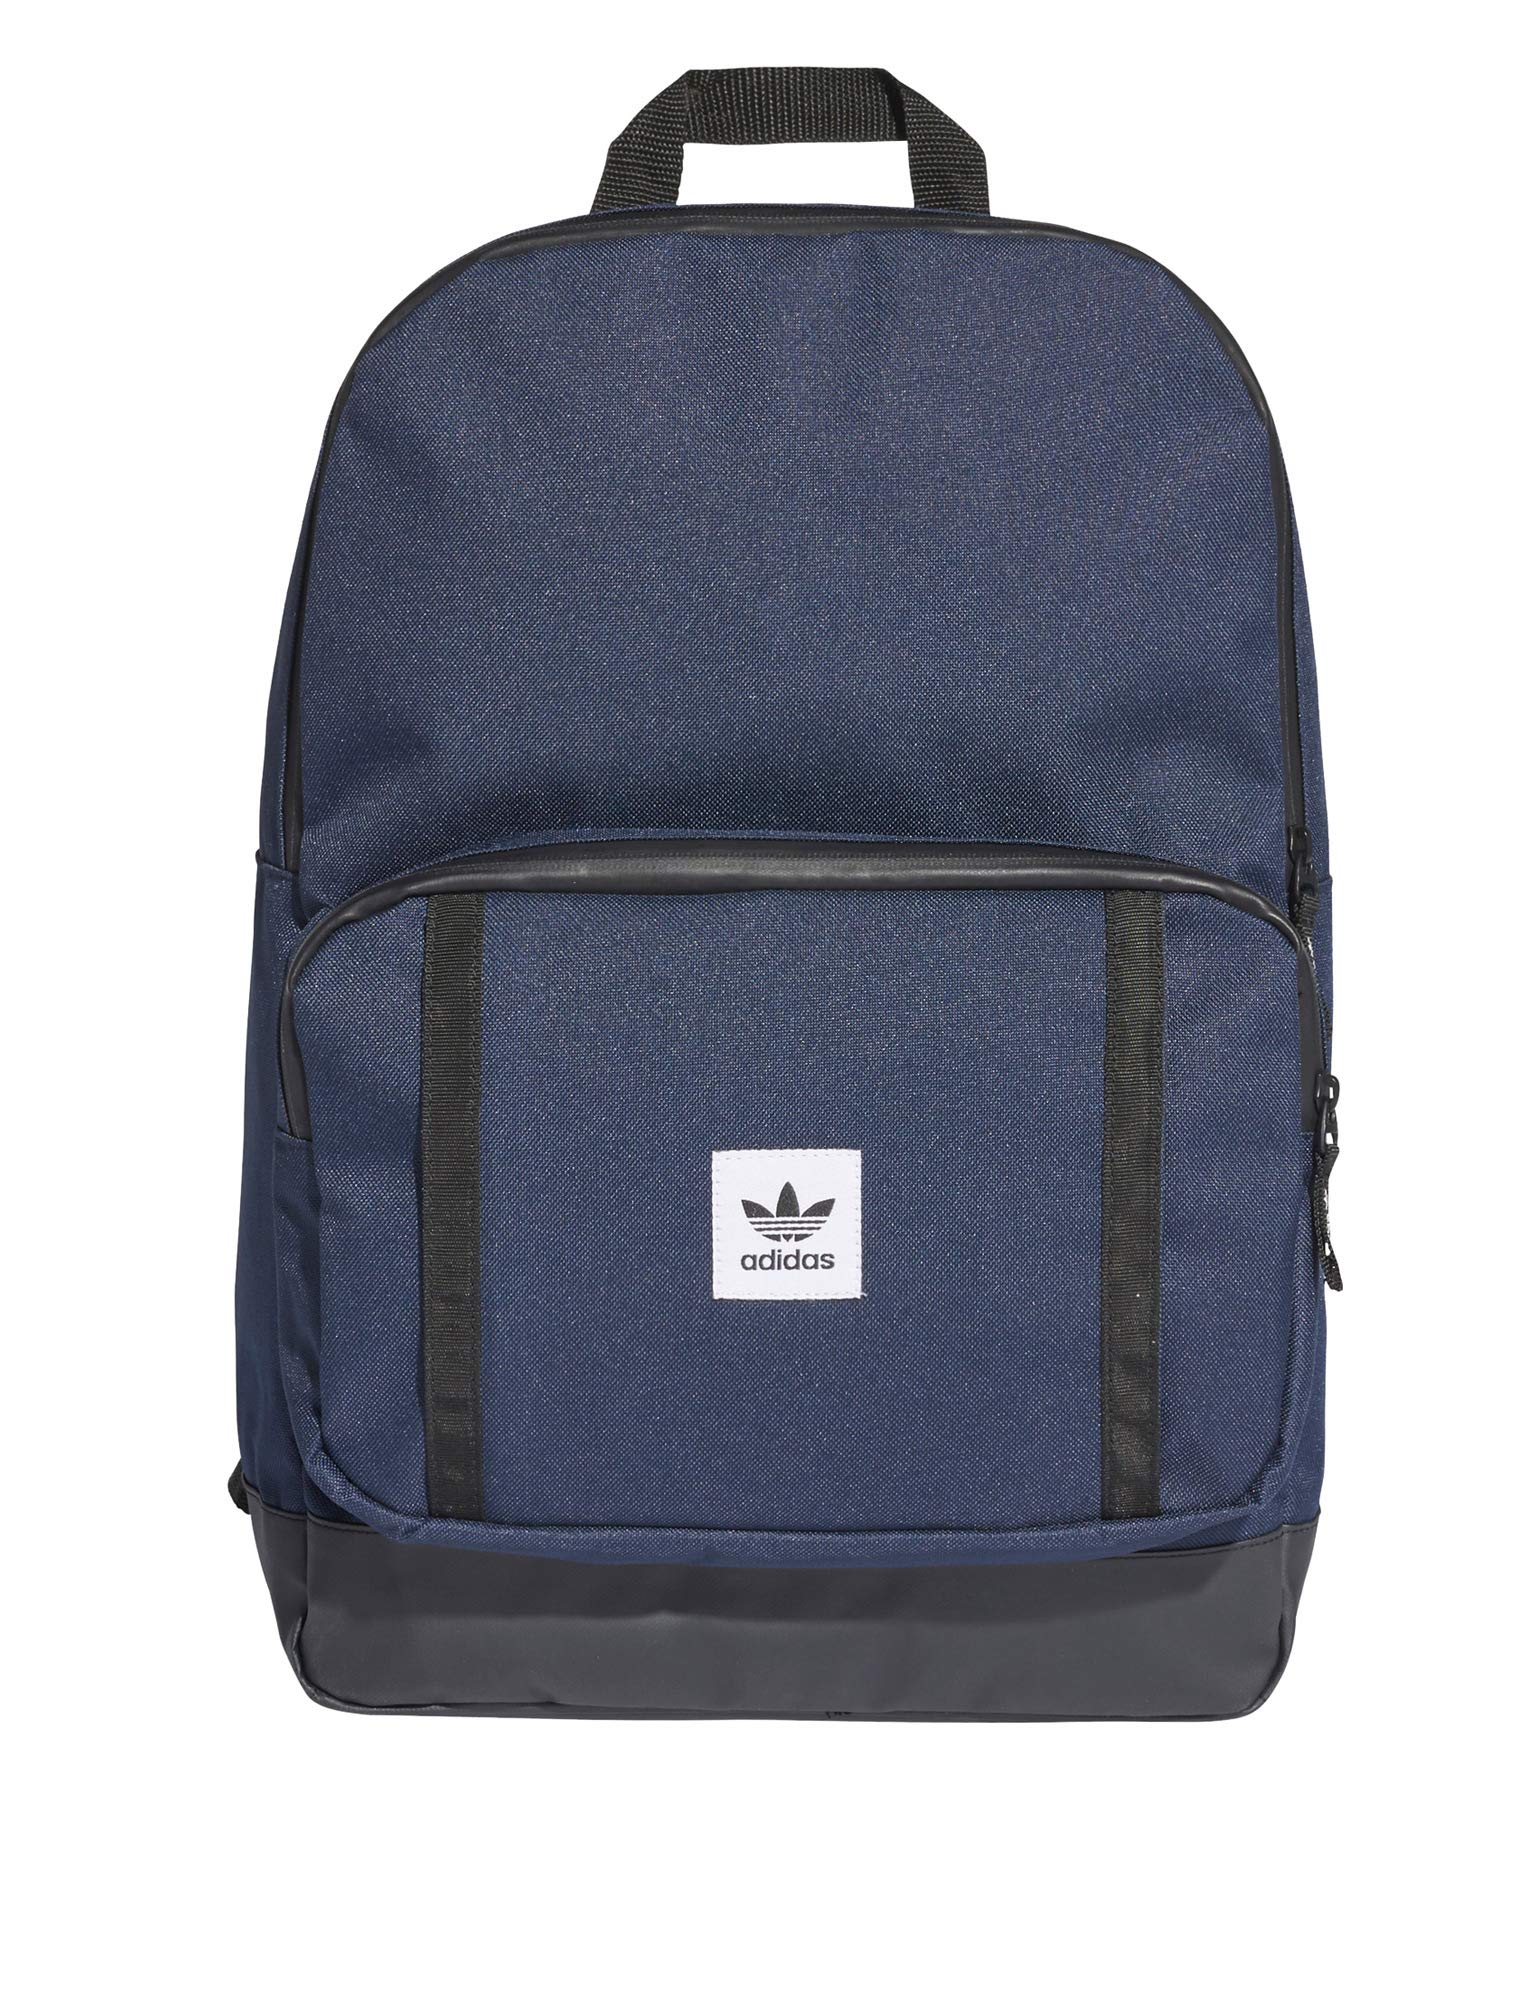 b7c50215031a Adidas Originals Classic Backpack Top Deals   Lowest Price ...